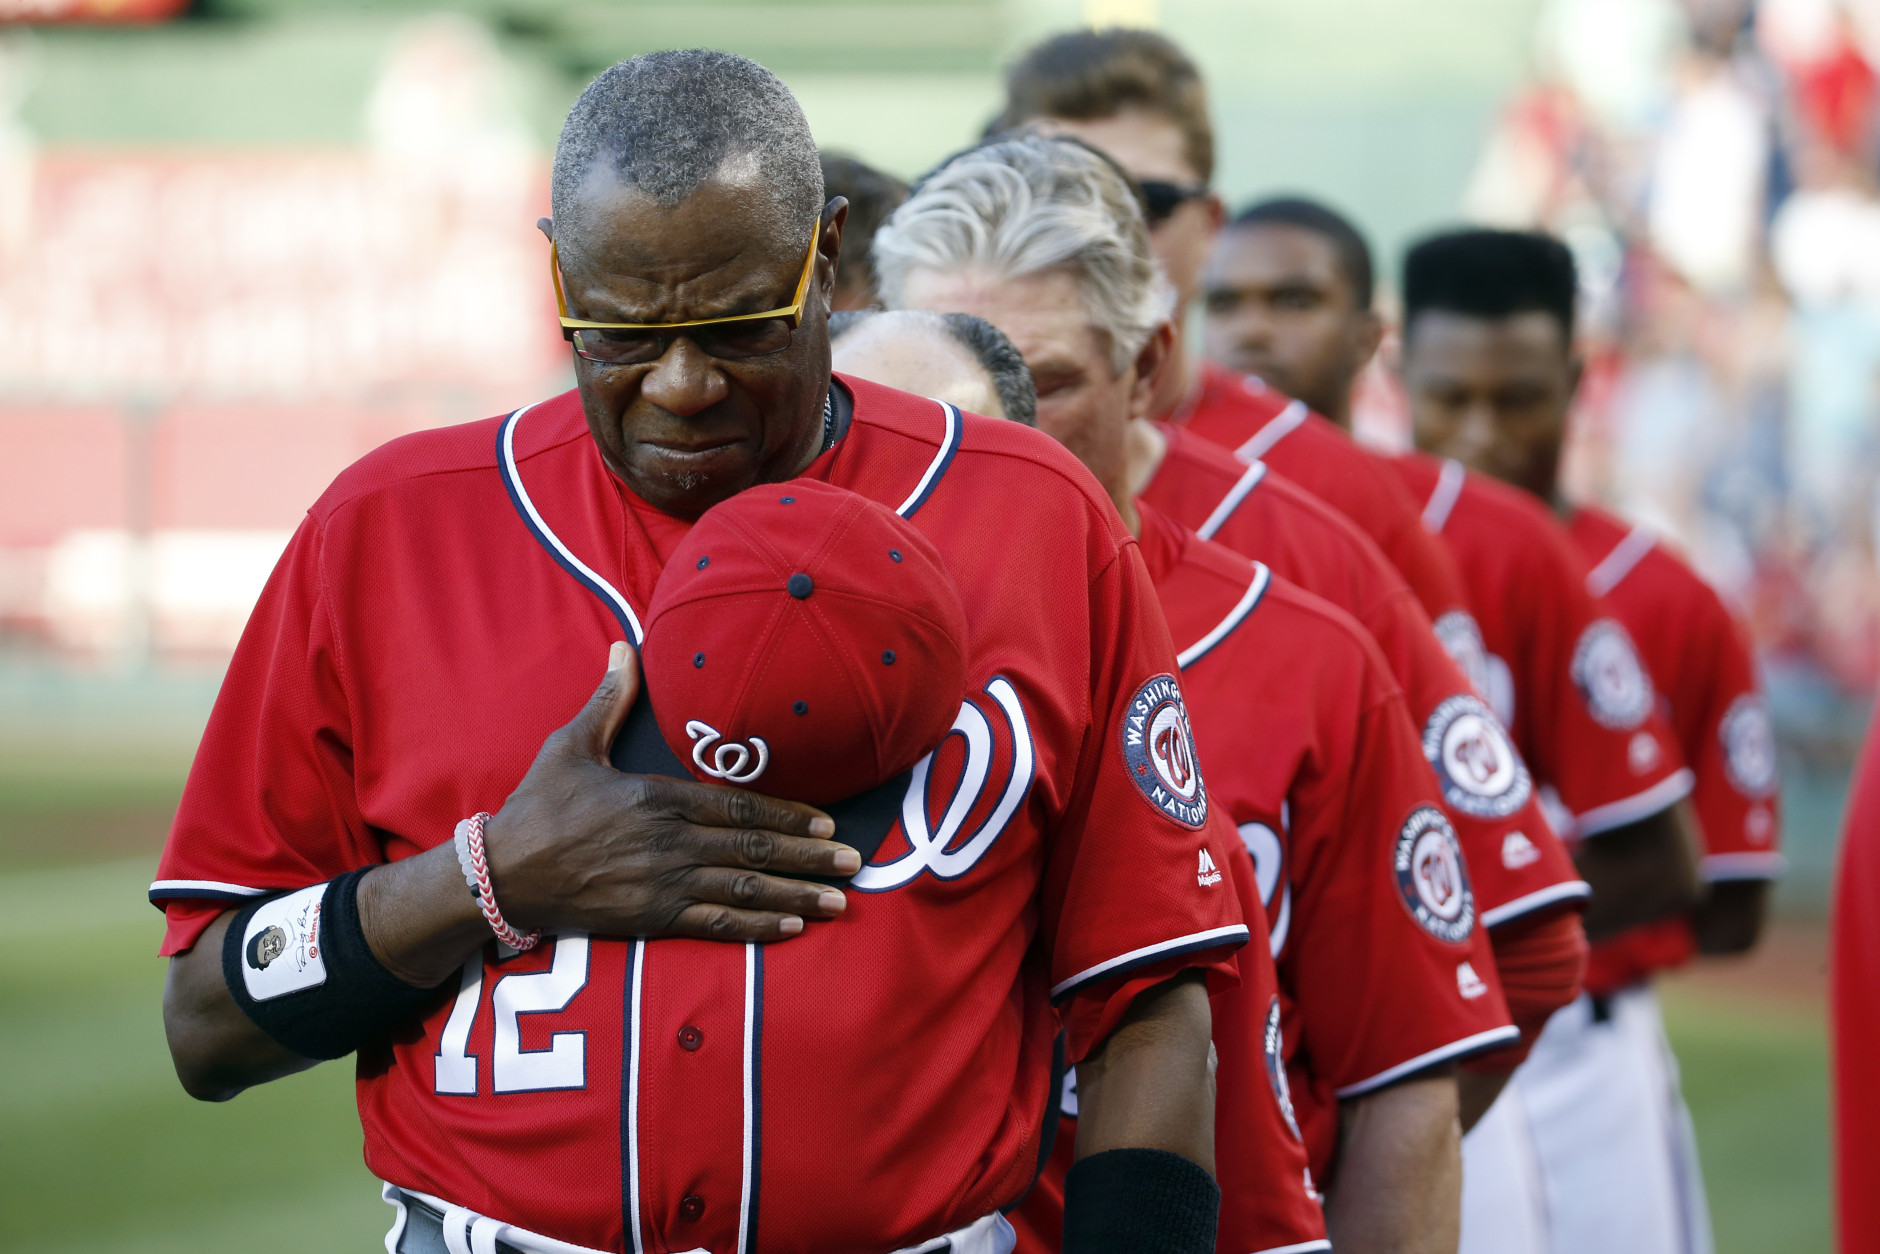 Washington Nationals manager Dusty Baker (12) and the other members of his team observe a moment of silence for Memorial Day, before a baseball game against the St. Louis Cardinals at Nationals Park, Saturday, May 28, 2016, in Washington. (AP Photo/Alex Brandon)